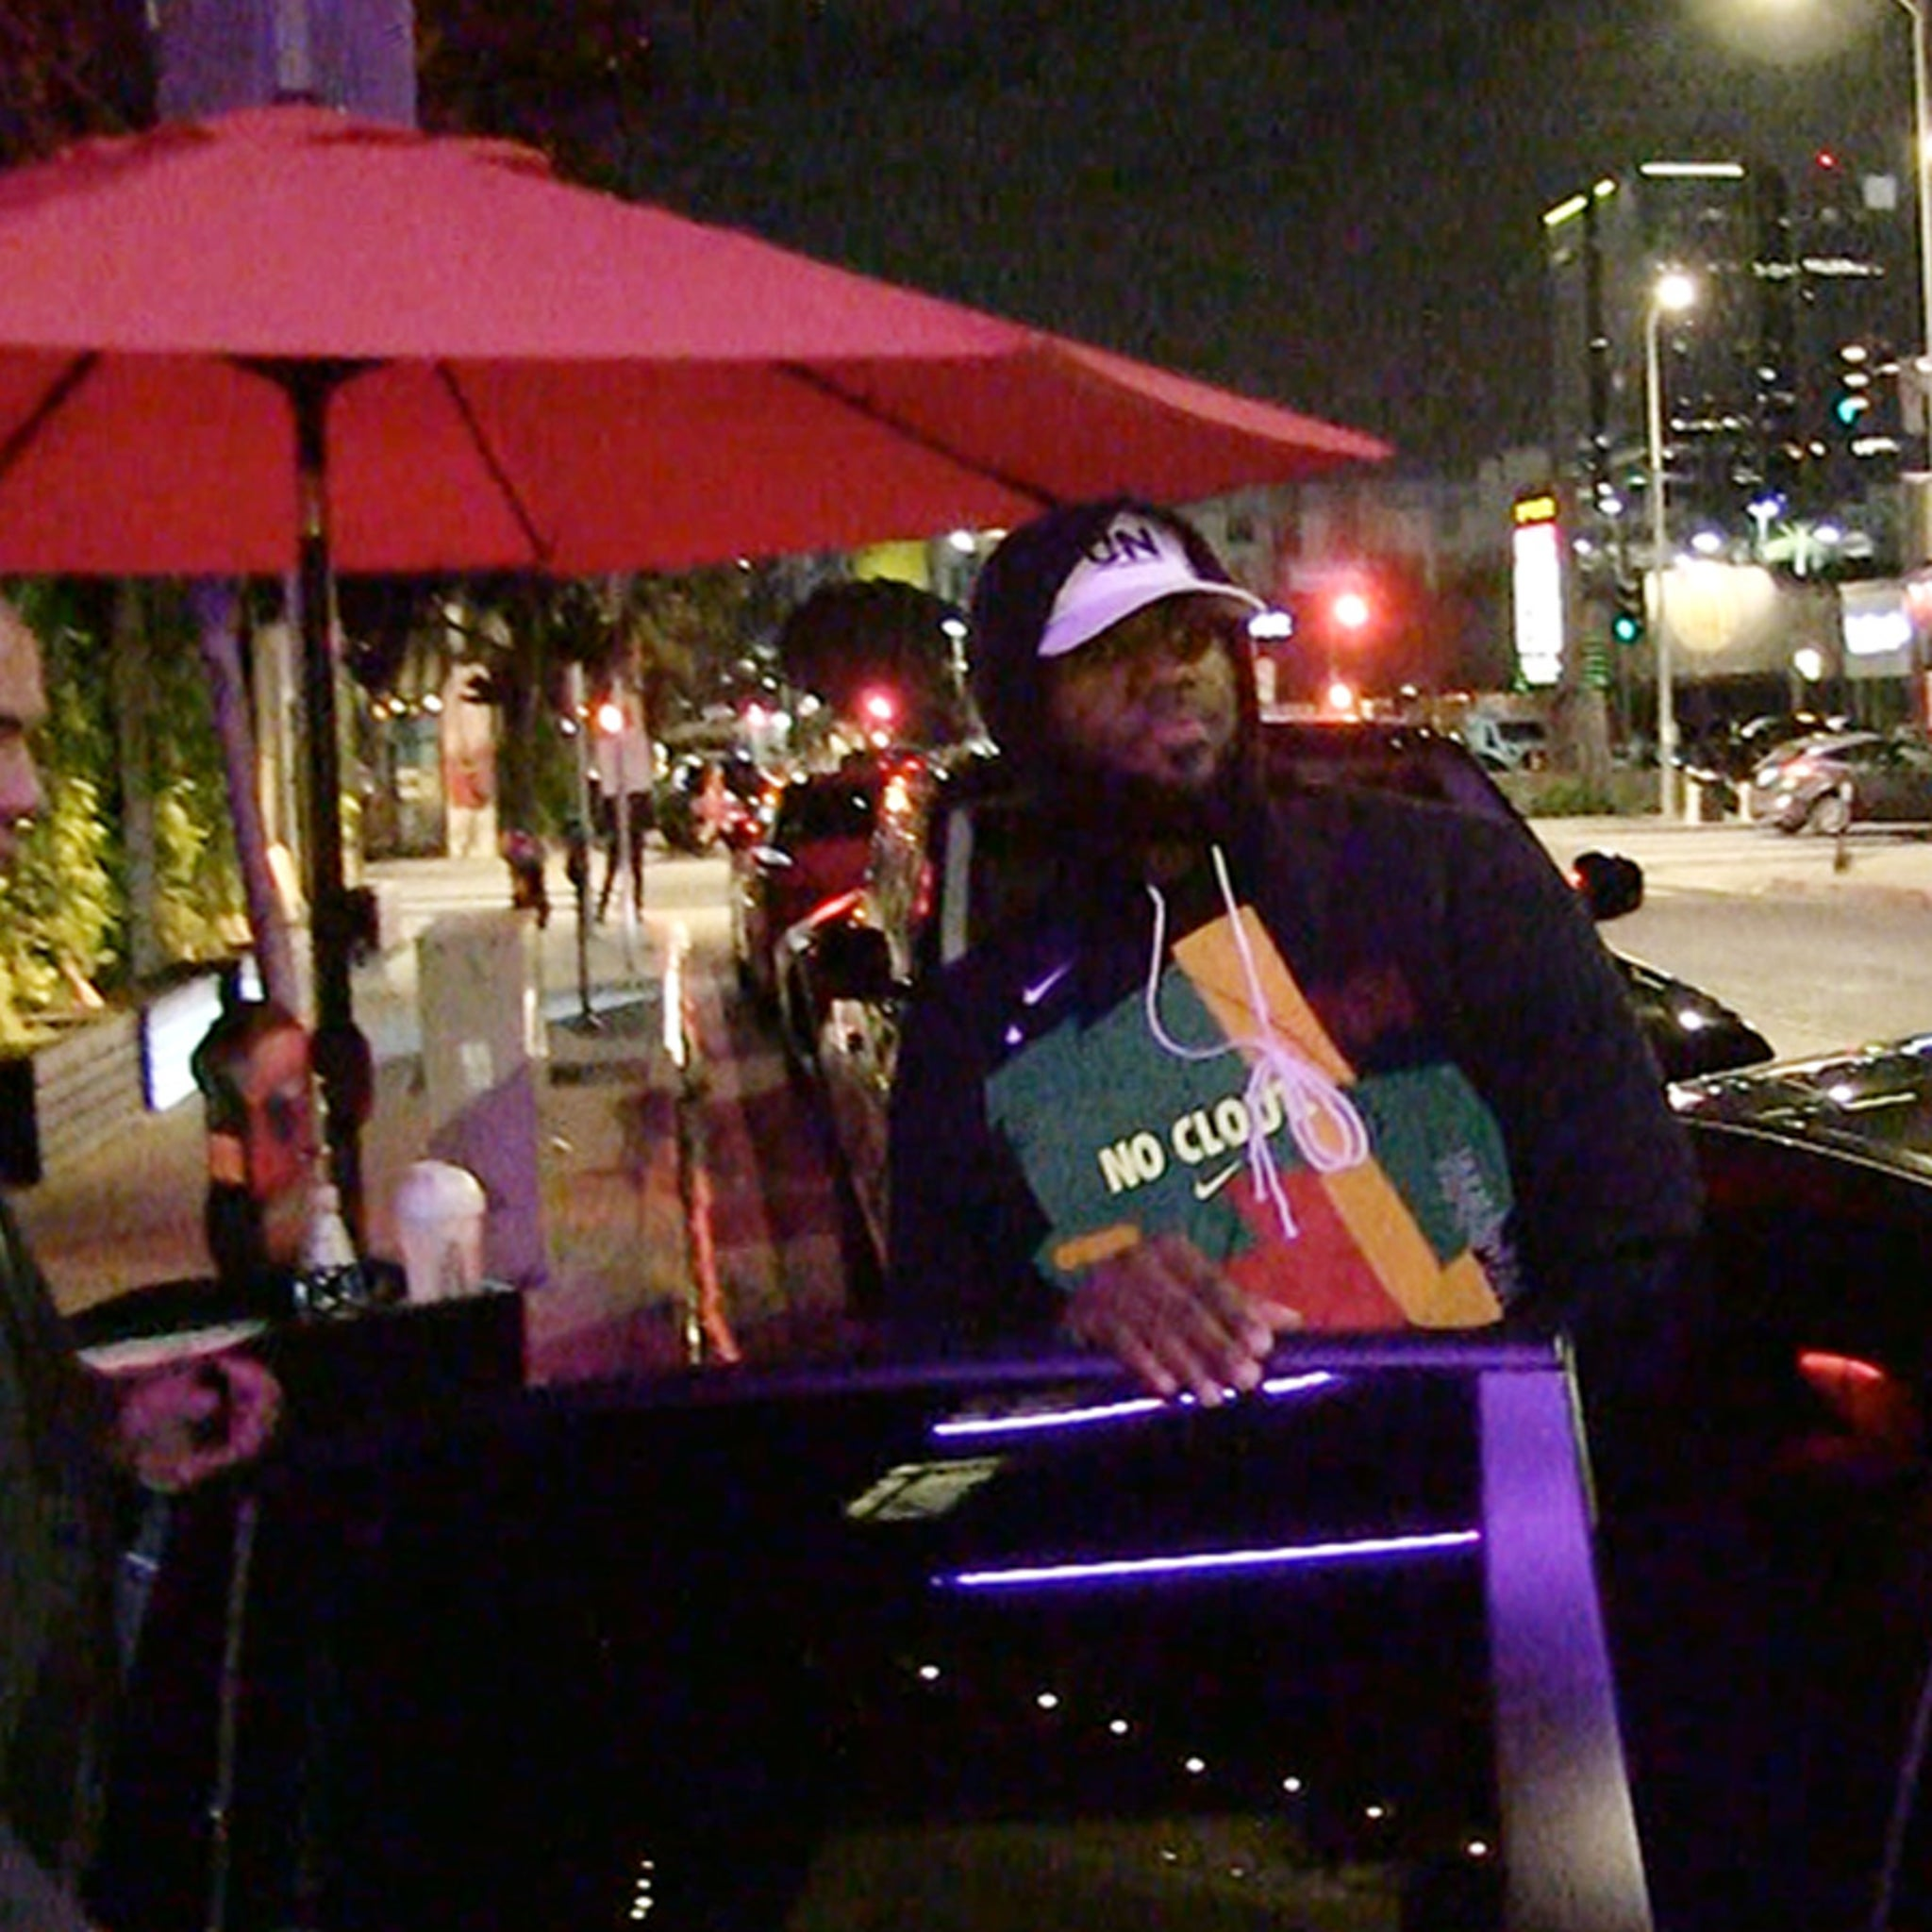 LeBron James Rocks 'No Clout' Shirt to Dinner After Lakers Game